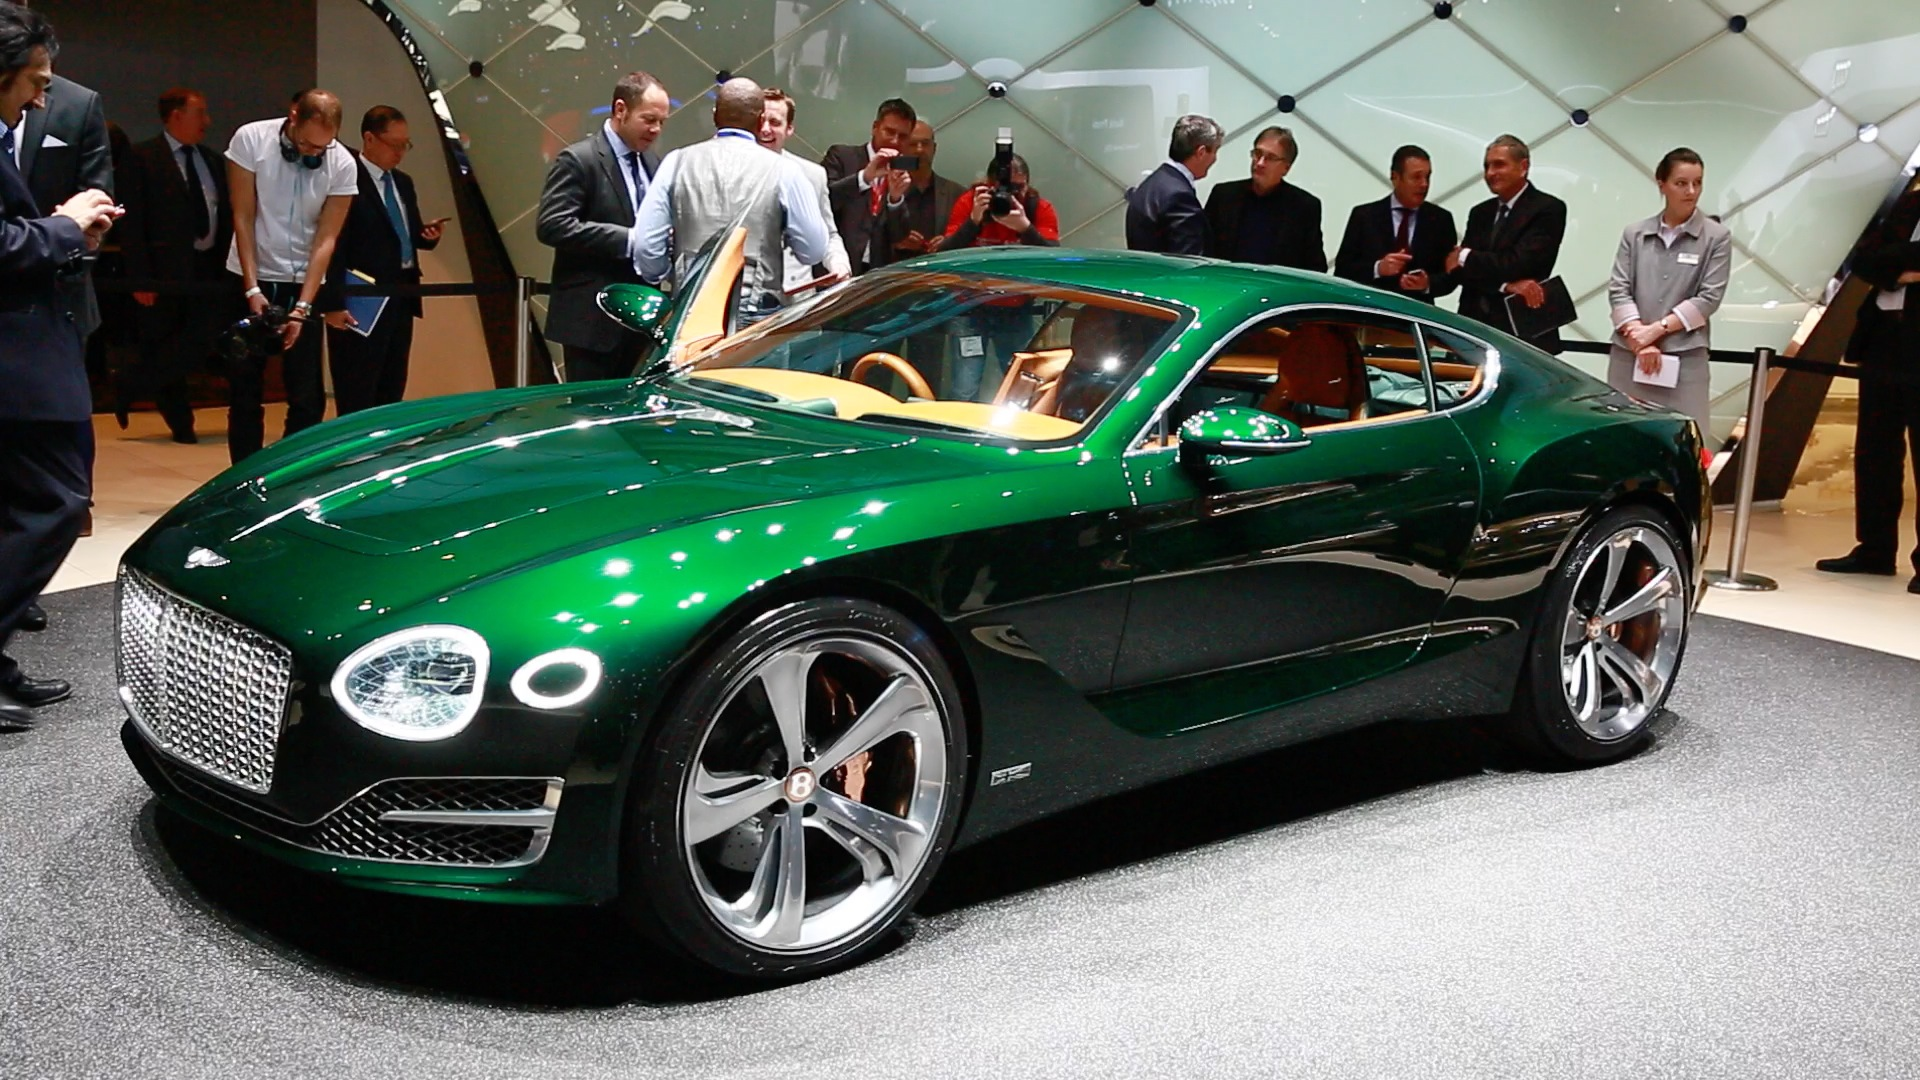 Video: Bentley EXP 10 Speed 6 brings new curves to a classic brand